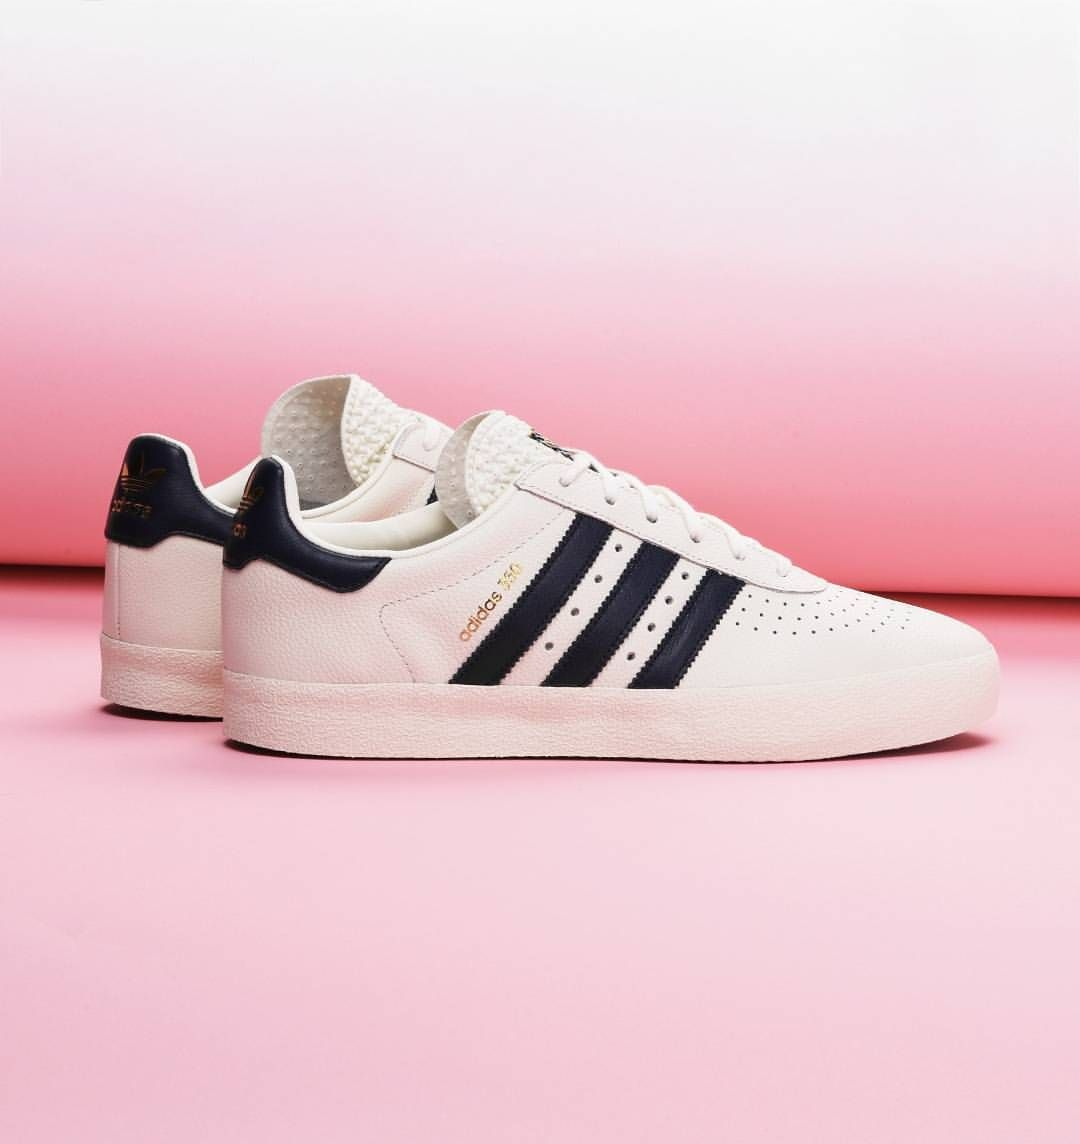 calirootsstore Sneakers Pinterest <3 Pinterest Sneakers Adidas and Instagram f81003